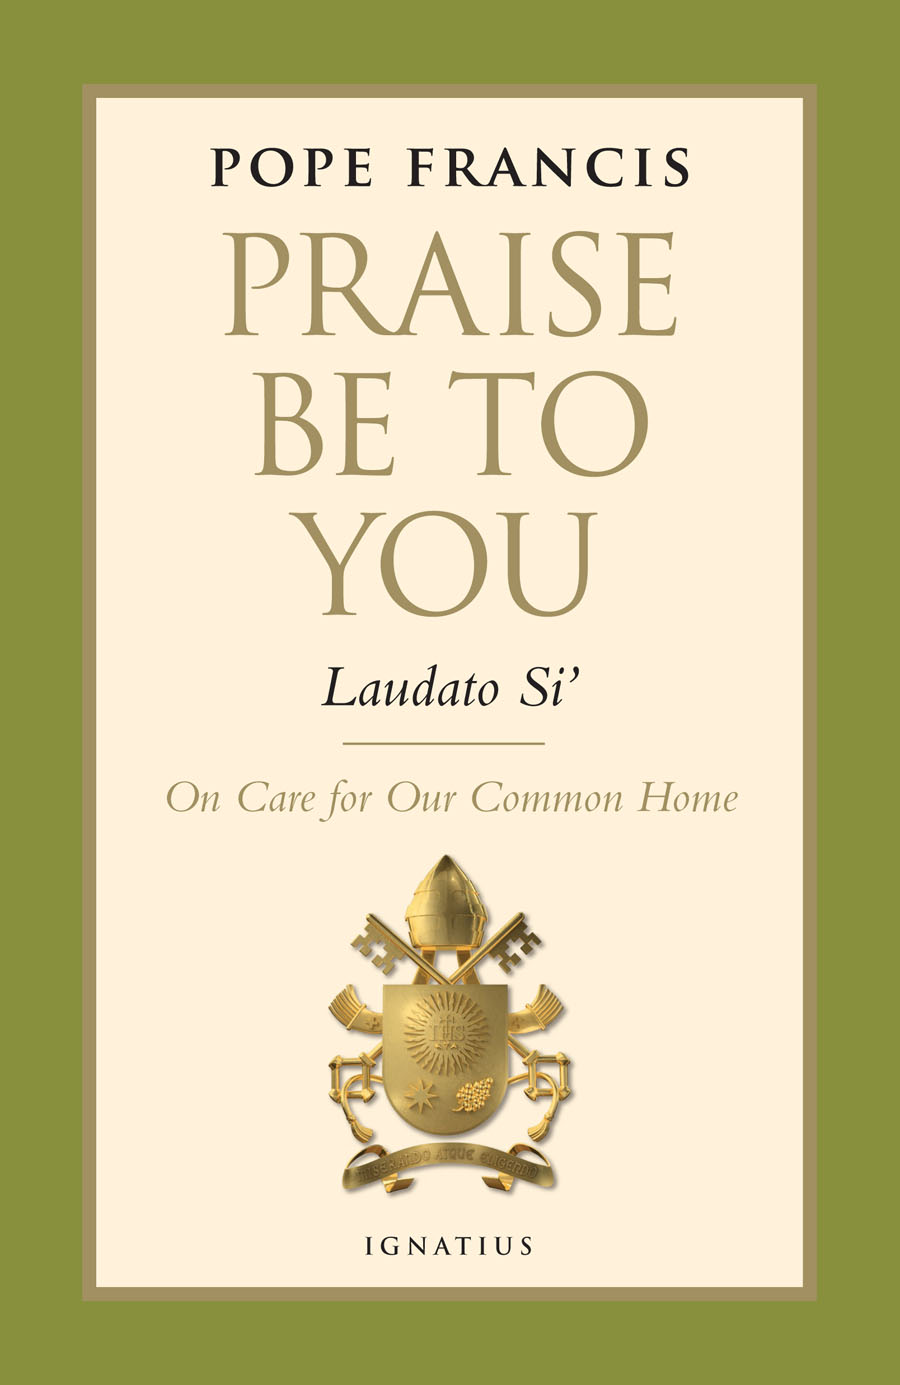 Laudato Si.book cover.jpg